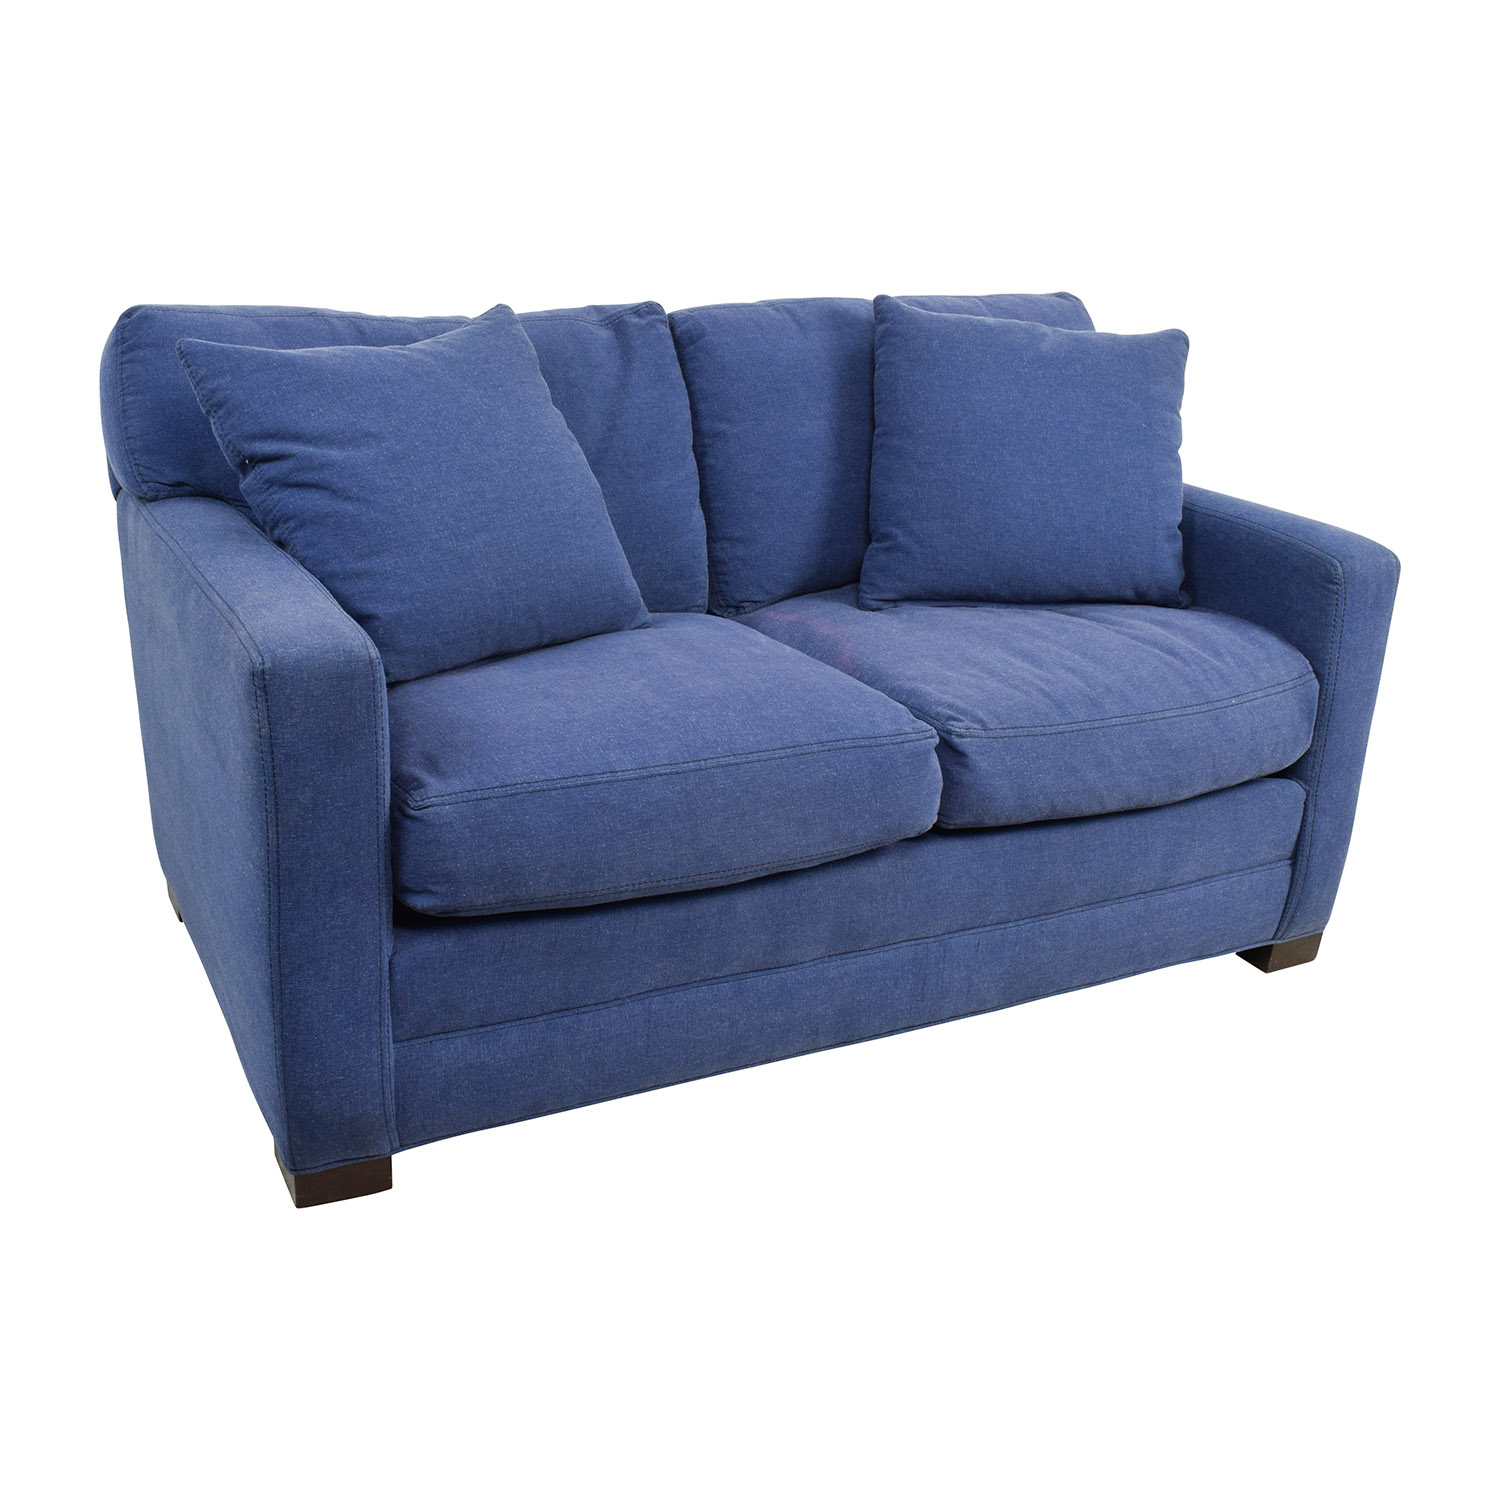 Lee Industries Denim Blue Loveseat Online